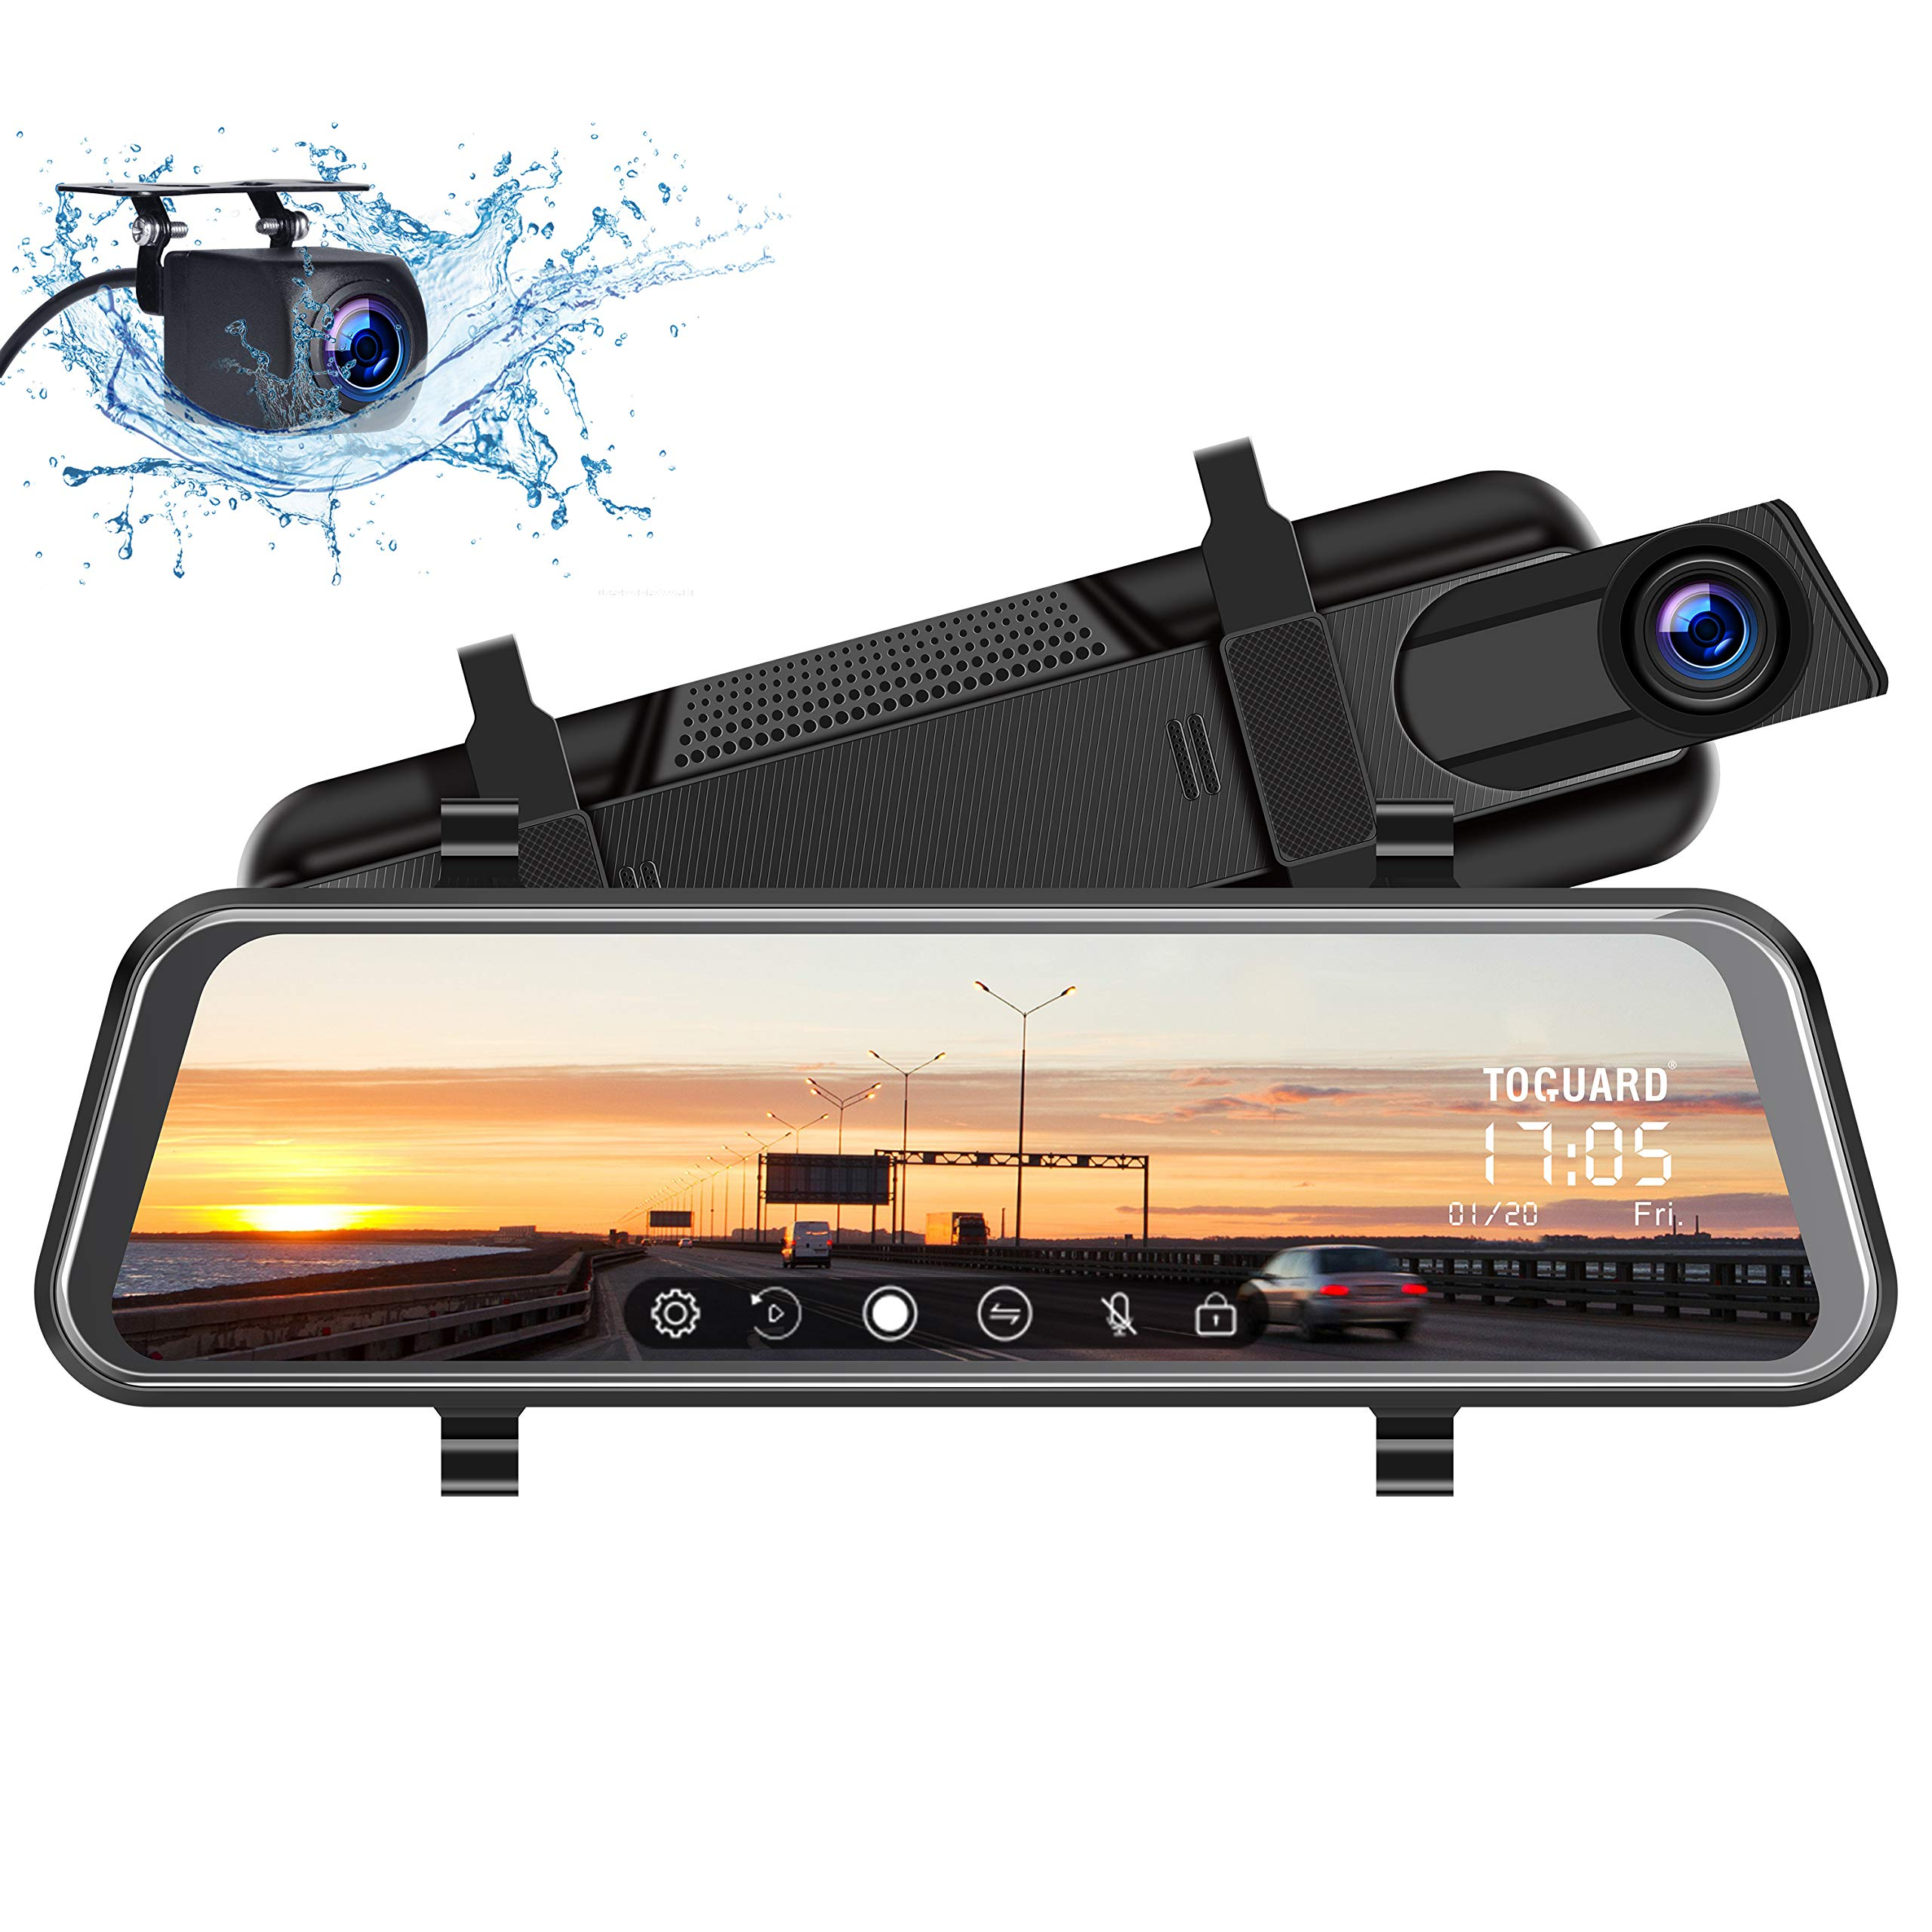 TOGUARD Backup Camera 10'' Mirror Dash Cam, Dash Cam Front and Rear Full Touch Screen Video Streaming Rear View Mirror Camera, Night Vision Waterproof 1080P Rear Camera